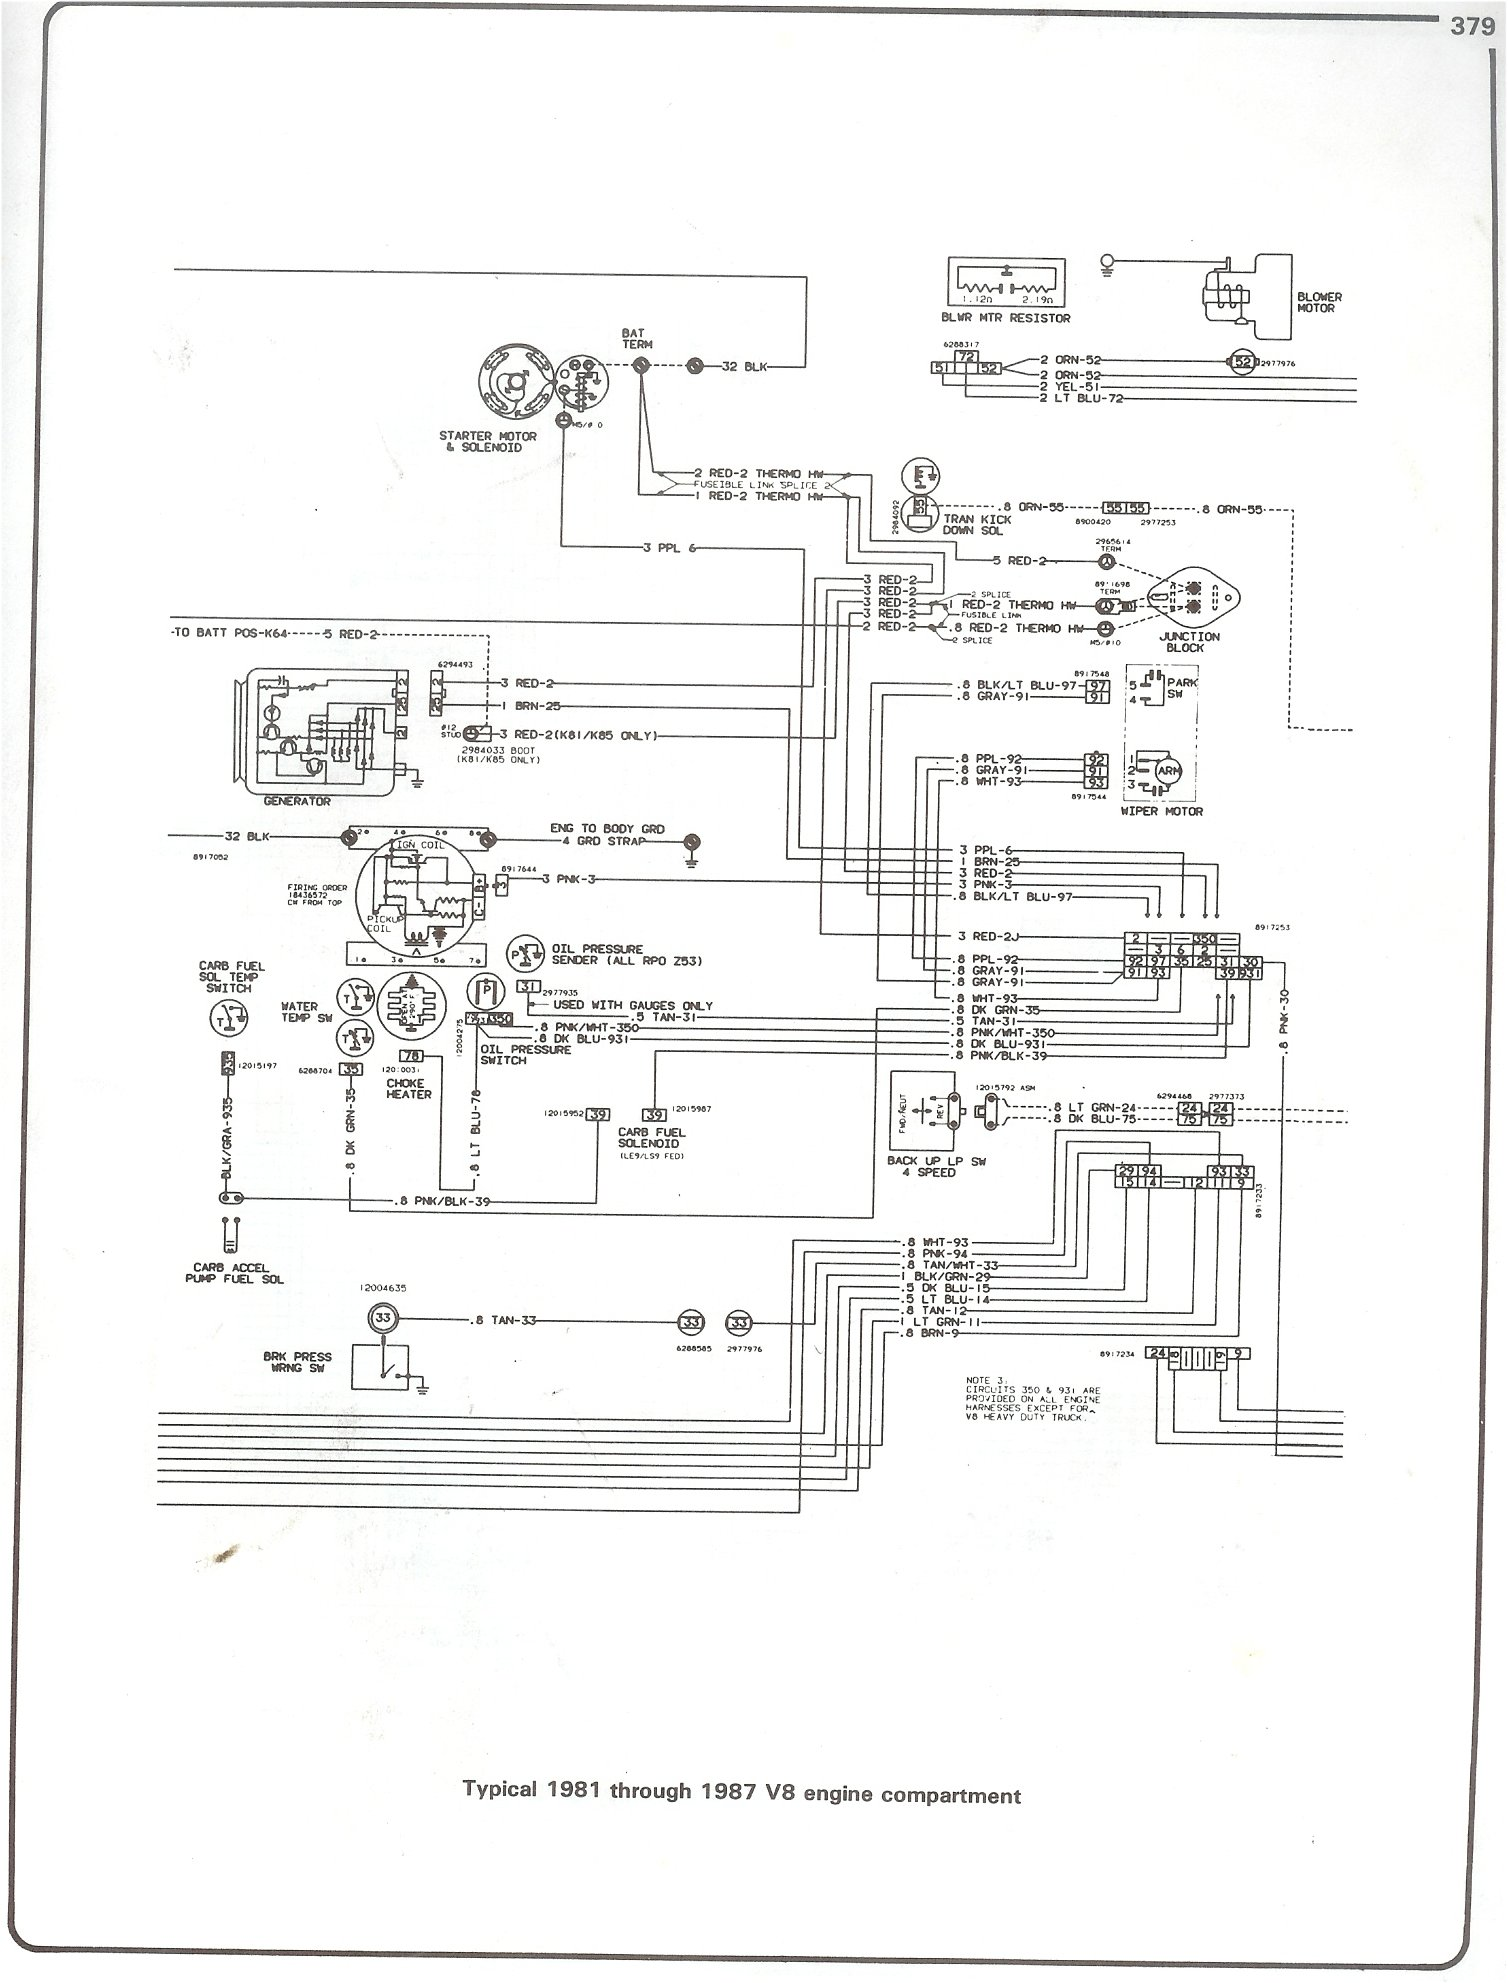 Complete 73-87 Wiring Diagrams73-87 Chevy Truck Forums